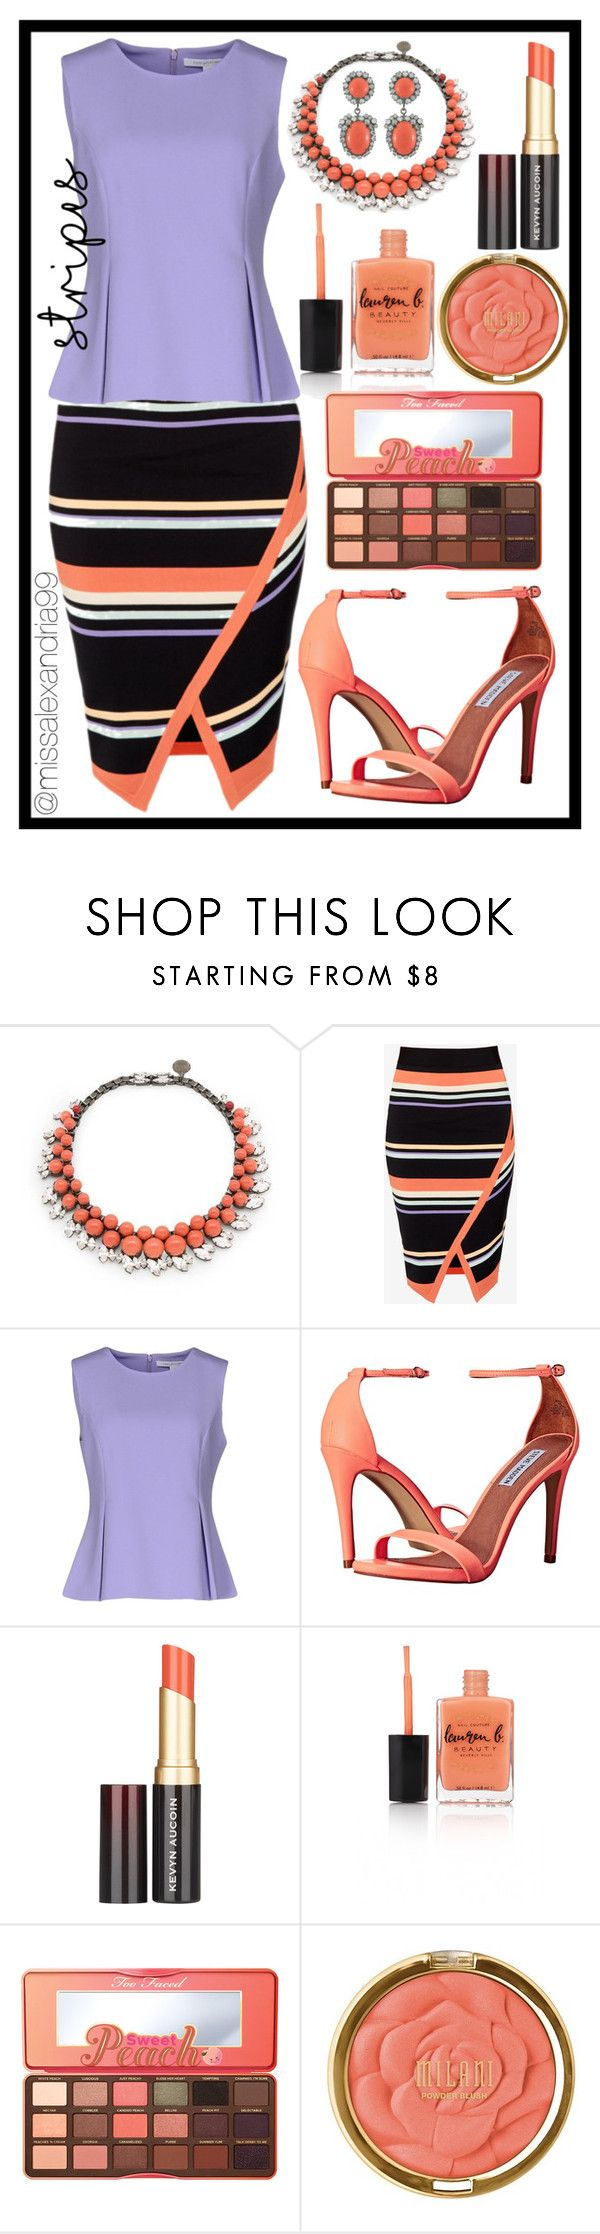 """""""Striped Lavender and Peach Peplum Outfit"""" by missalexandria99 ❤ liked on Polyvore featuring Ellen Conde, Ted Baker, Diane Von Furstenberg, Steve Madden, Kevyn Aucoin, Lauren B. Beauty, Too Faced Cosmetics, Milani, Kenneth Jay Lane and peach"""